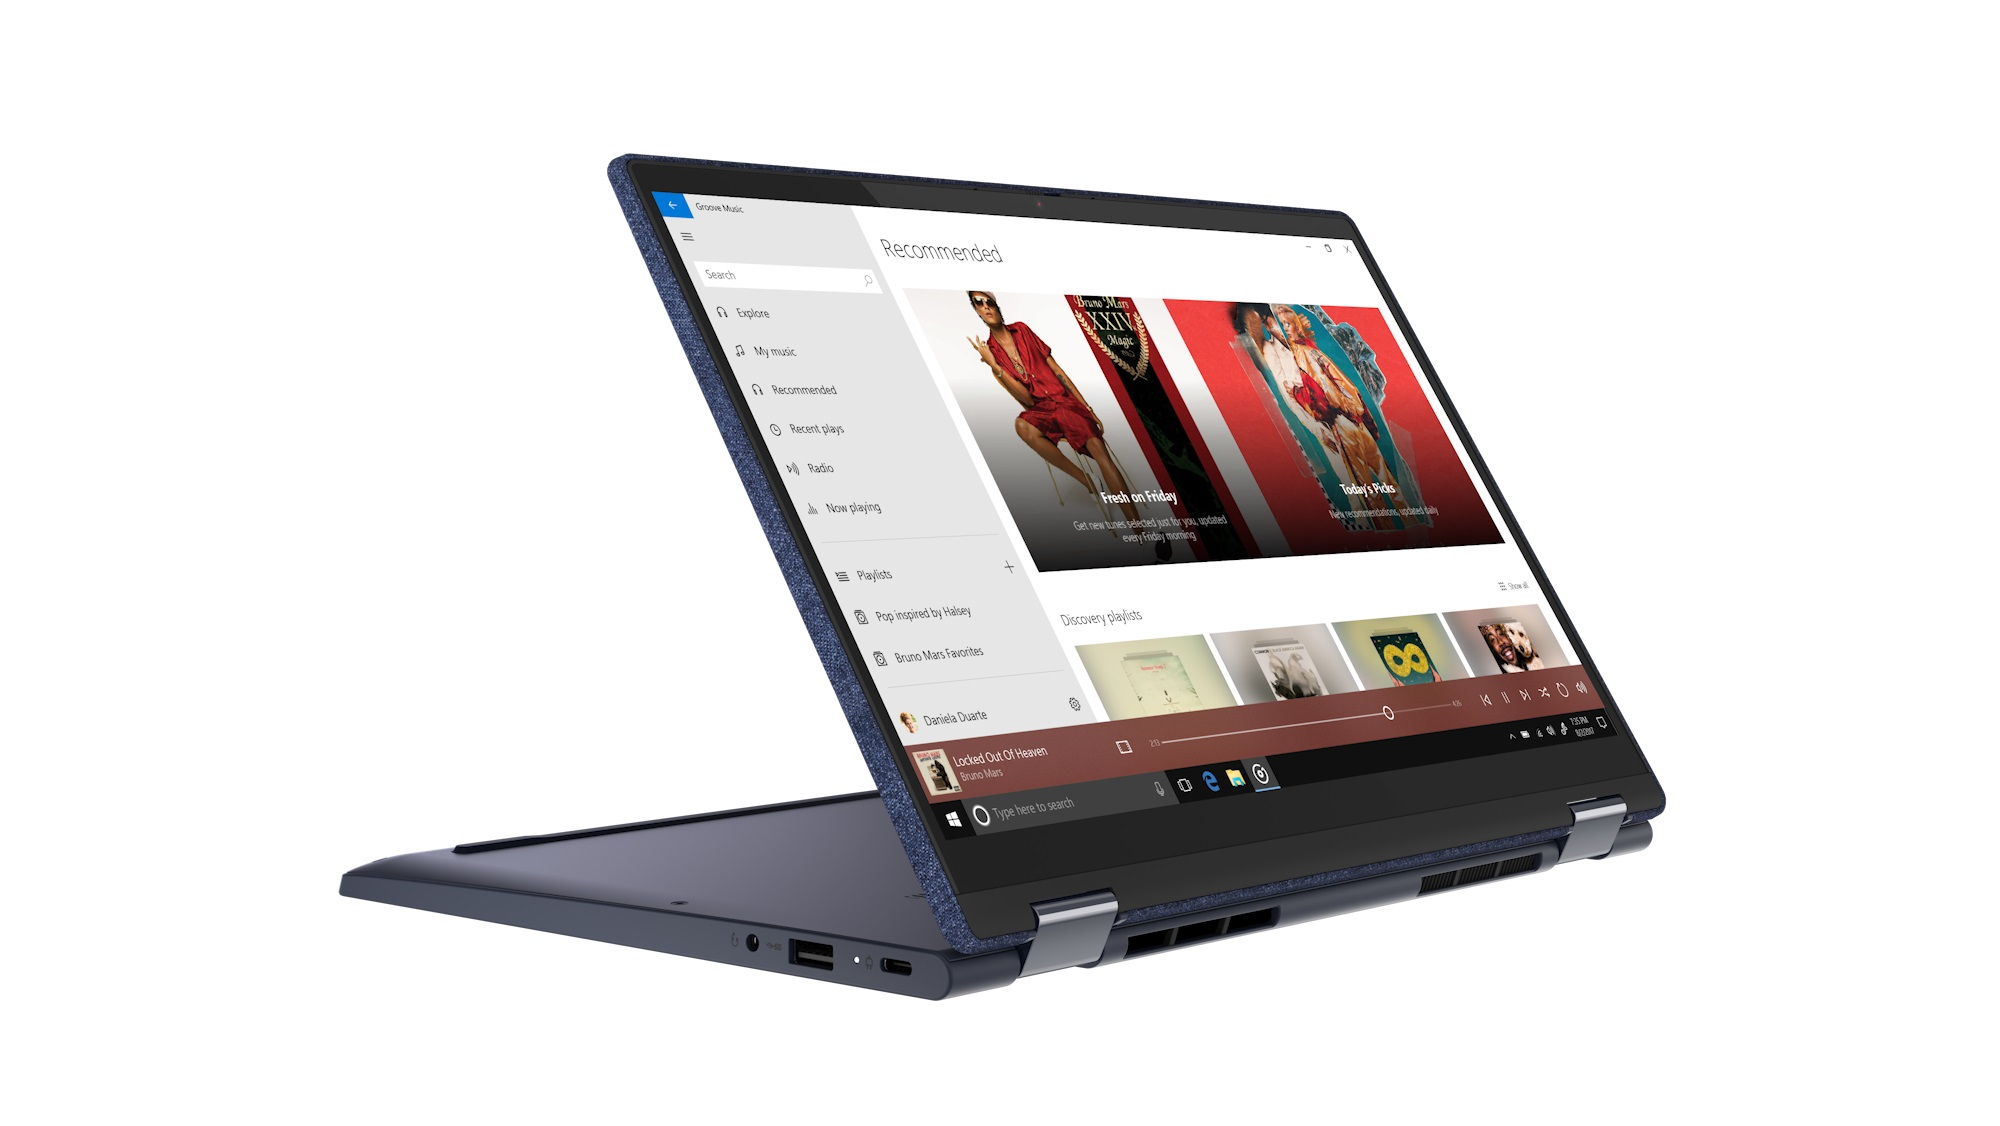 Lenovo Yoga 6 laptop